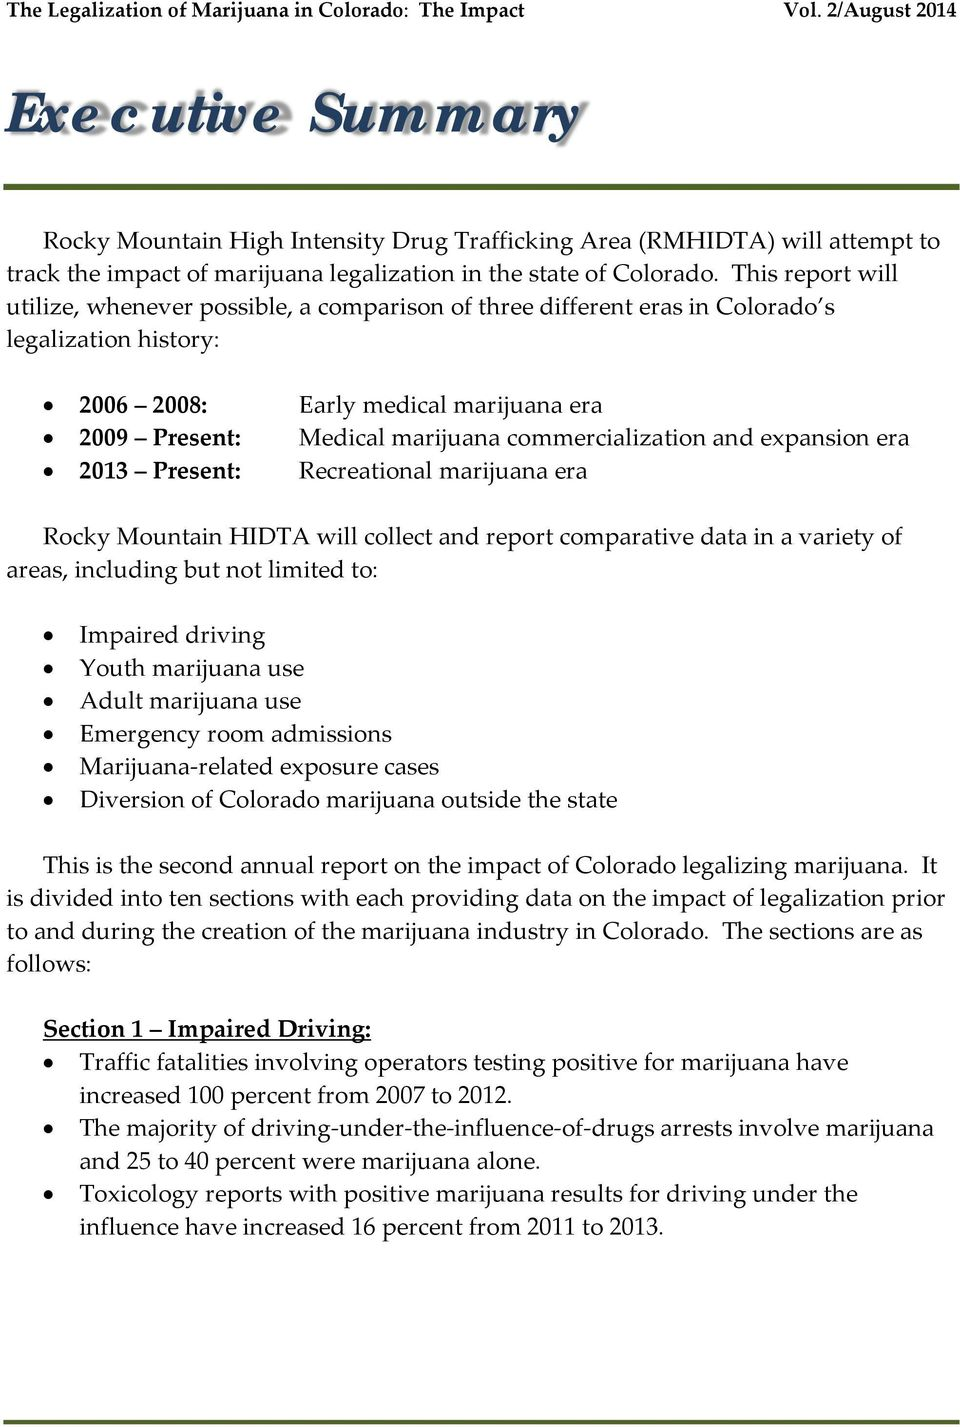 commercialization and expansion era 2013 Present: Recreational marijuana era Rocky Mountain HIDTA will collect and report comparative data in a variety of areas, including but not limited to: